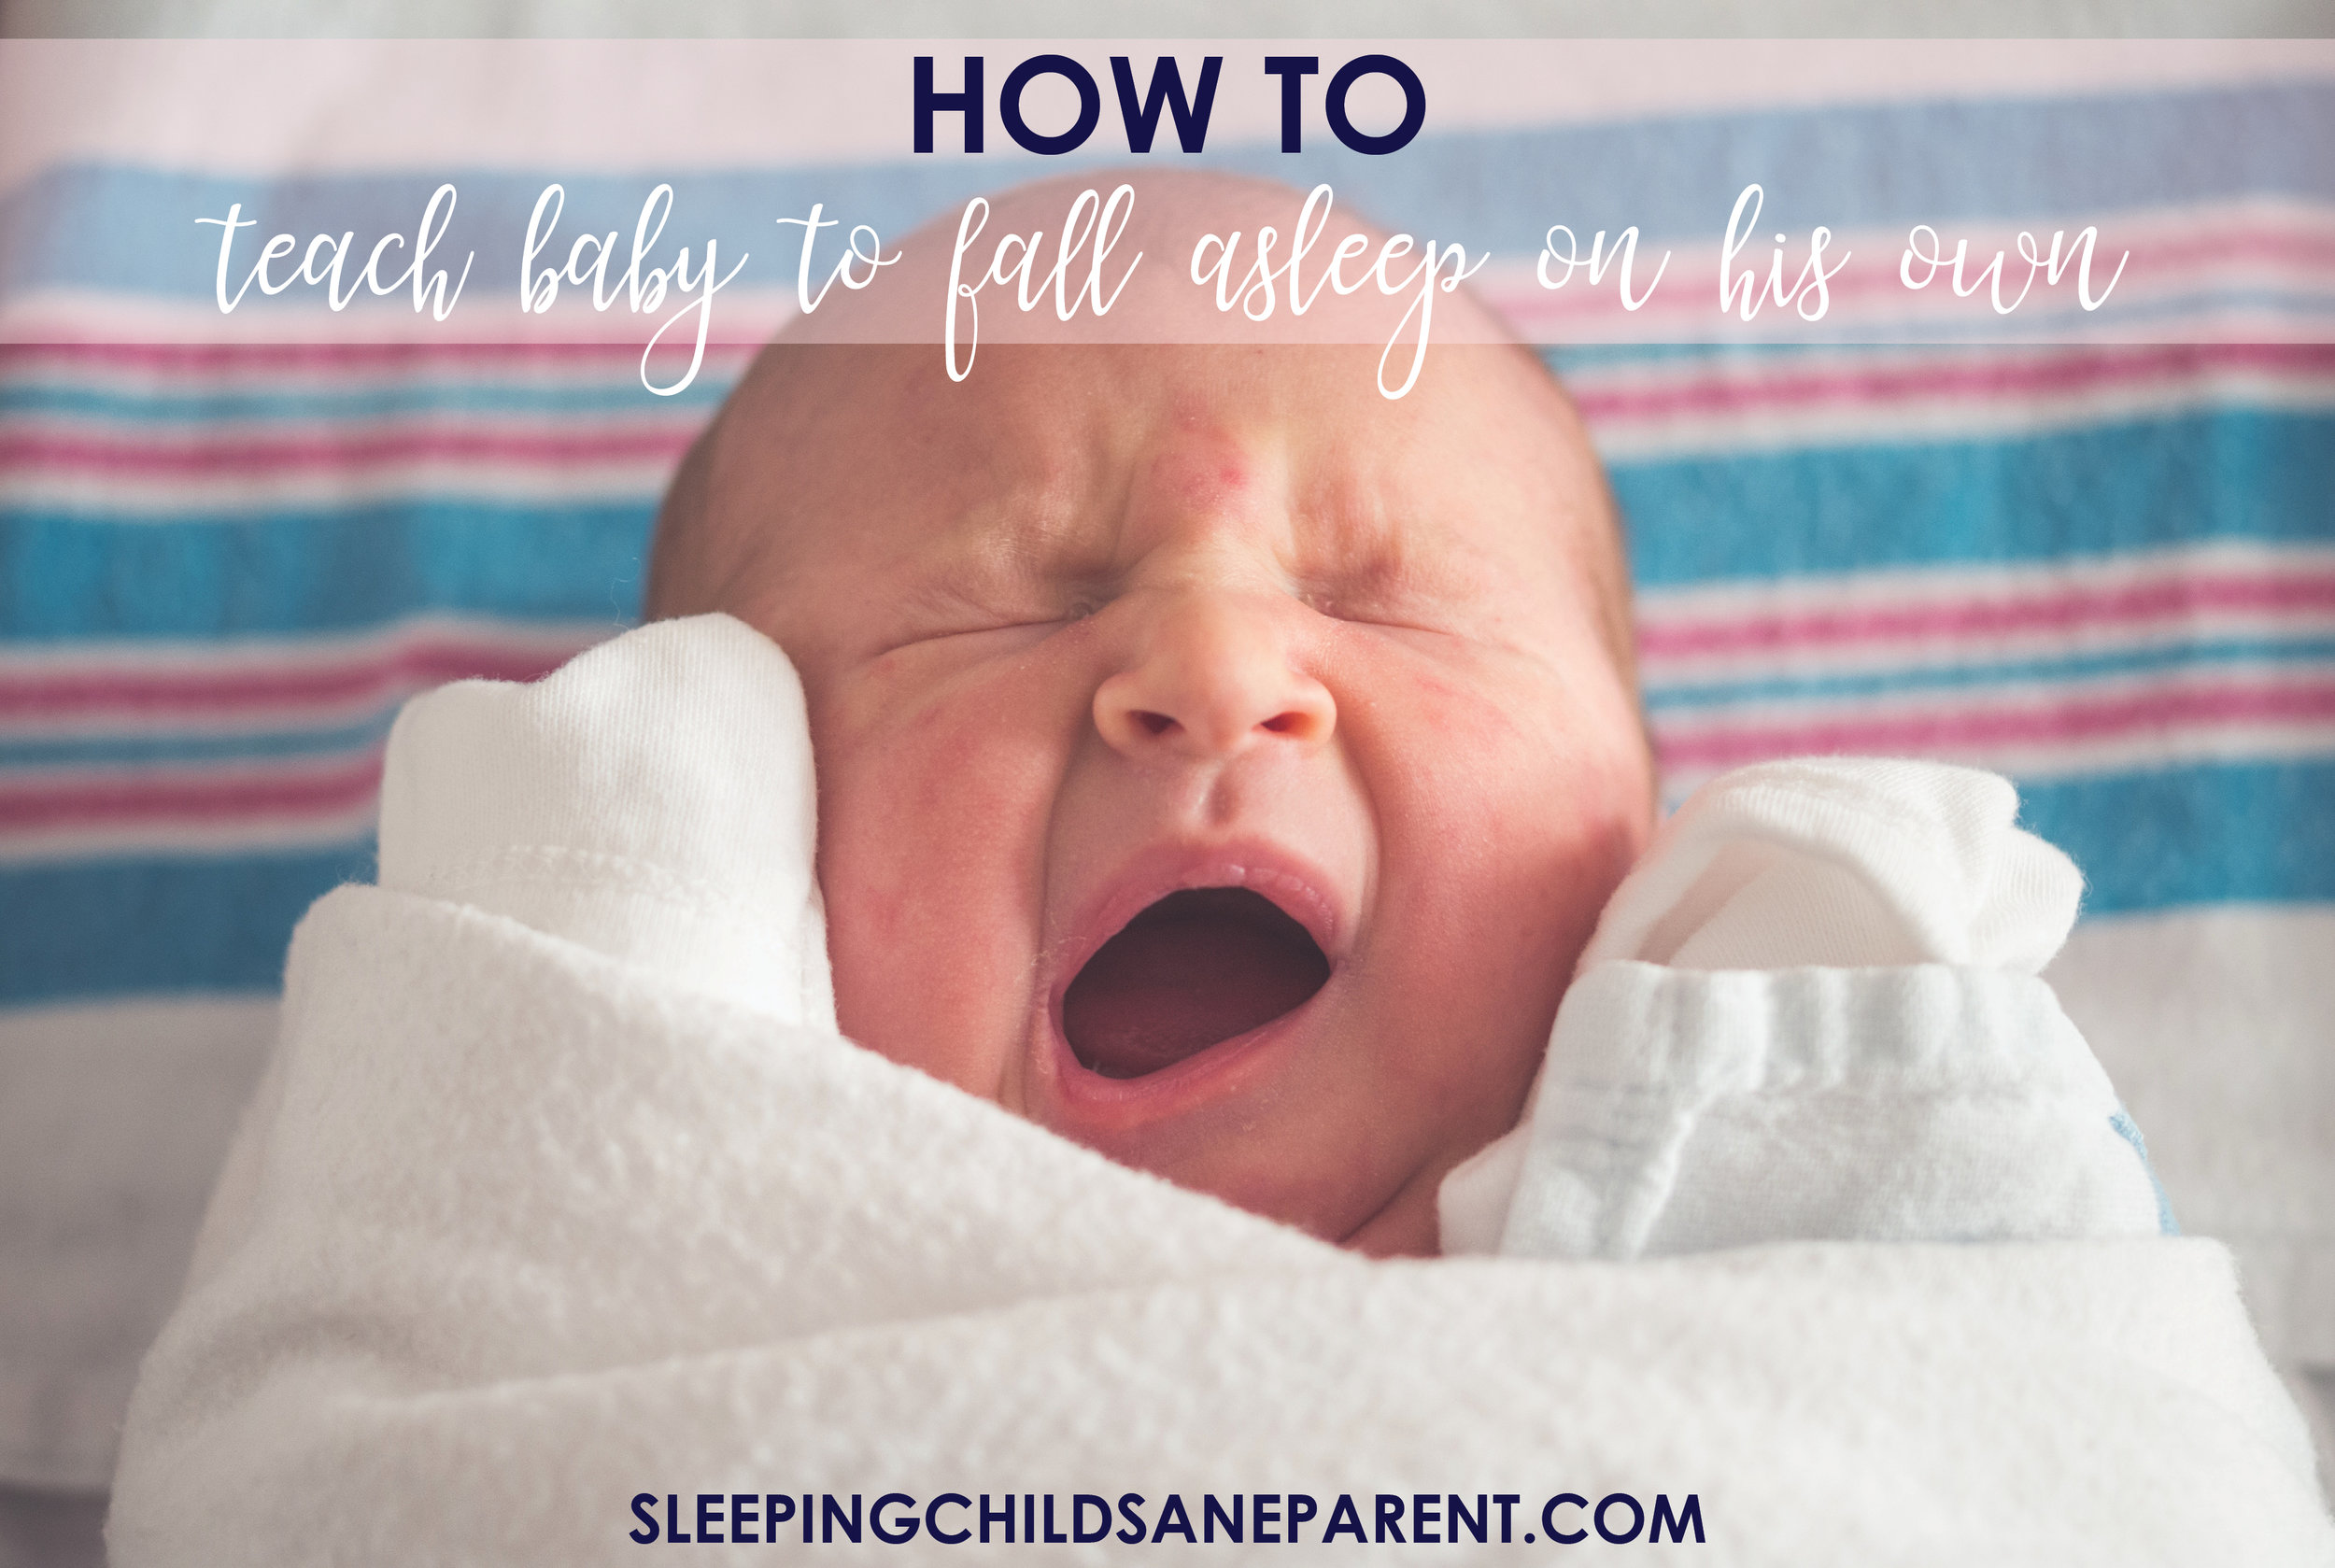 Falling asleep independently can be tricky business for babies. Whether you're hoping to teach your newborn from day 1 or you're trying to unteach and reteach your toddler, you'll find helpful information here on what you can do to start teaching this skill ASAP!